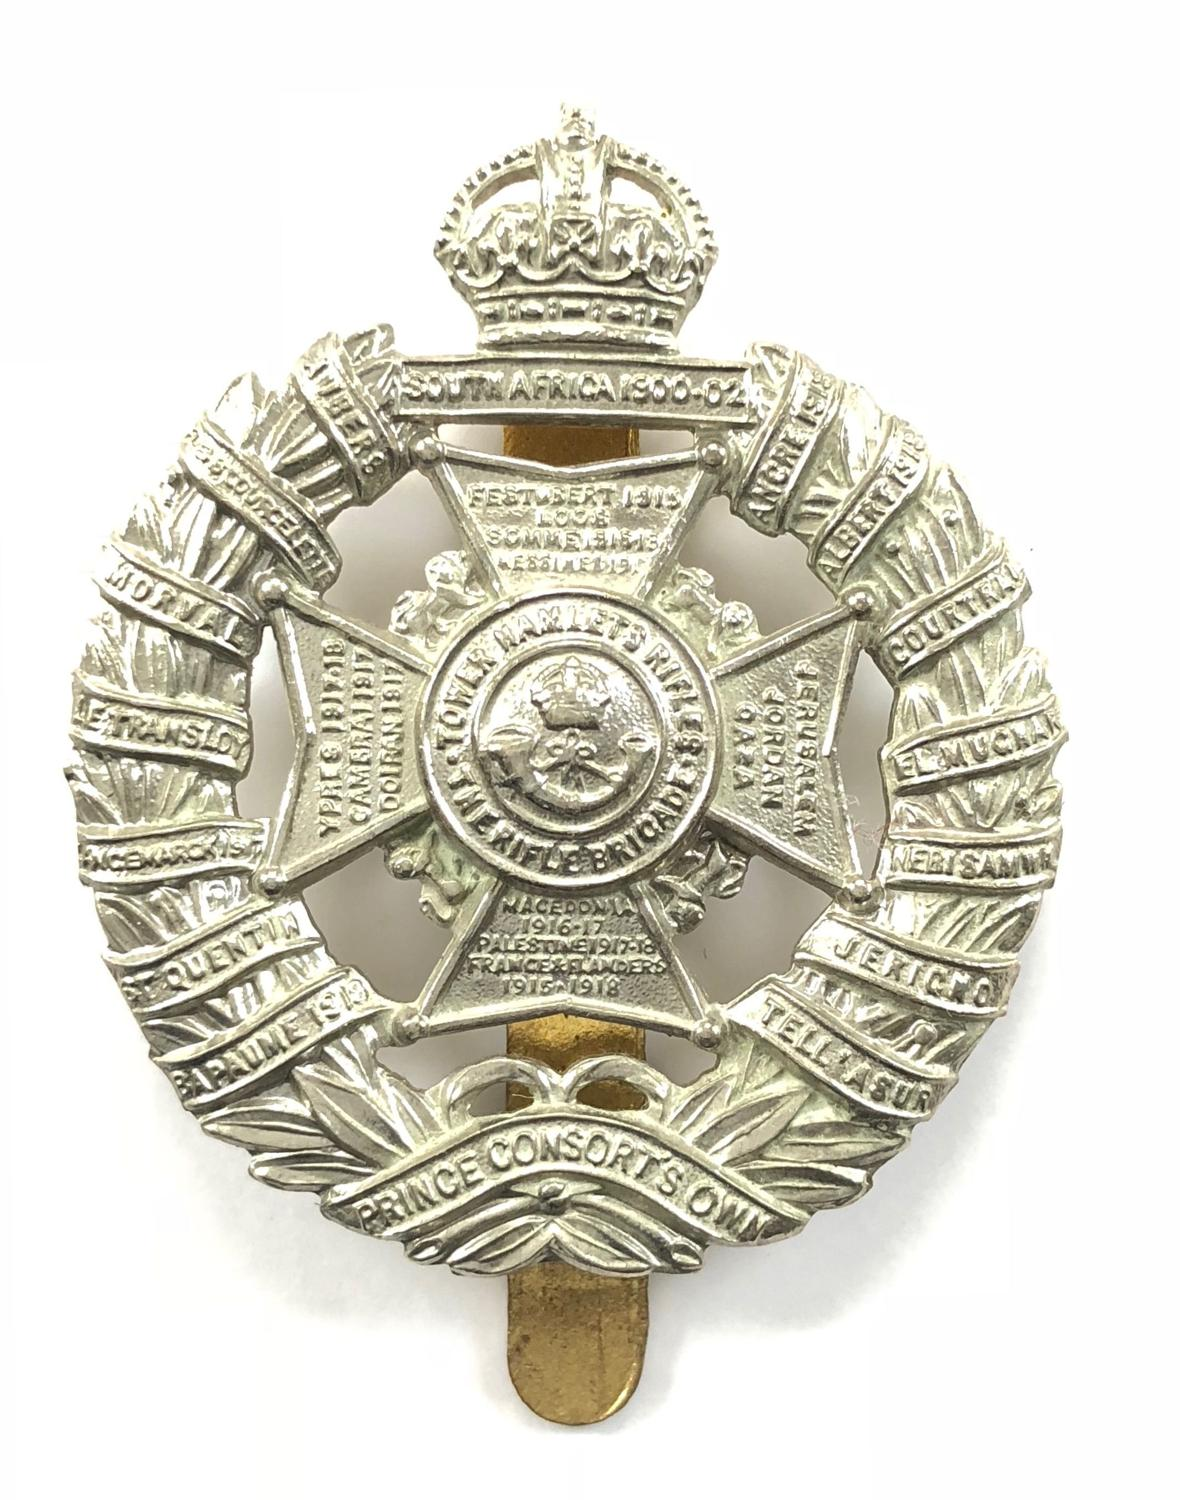 Tower Hamlets Rifles post 1926 white metal cap badge